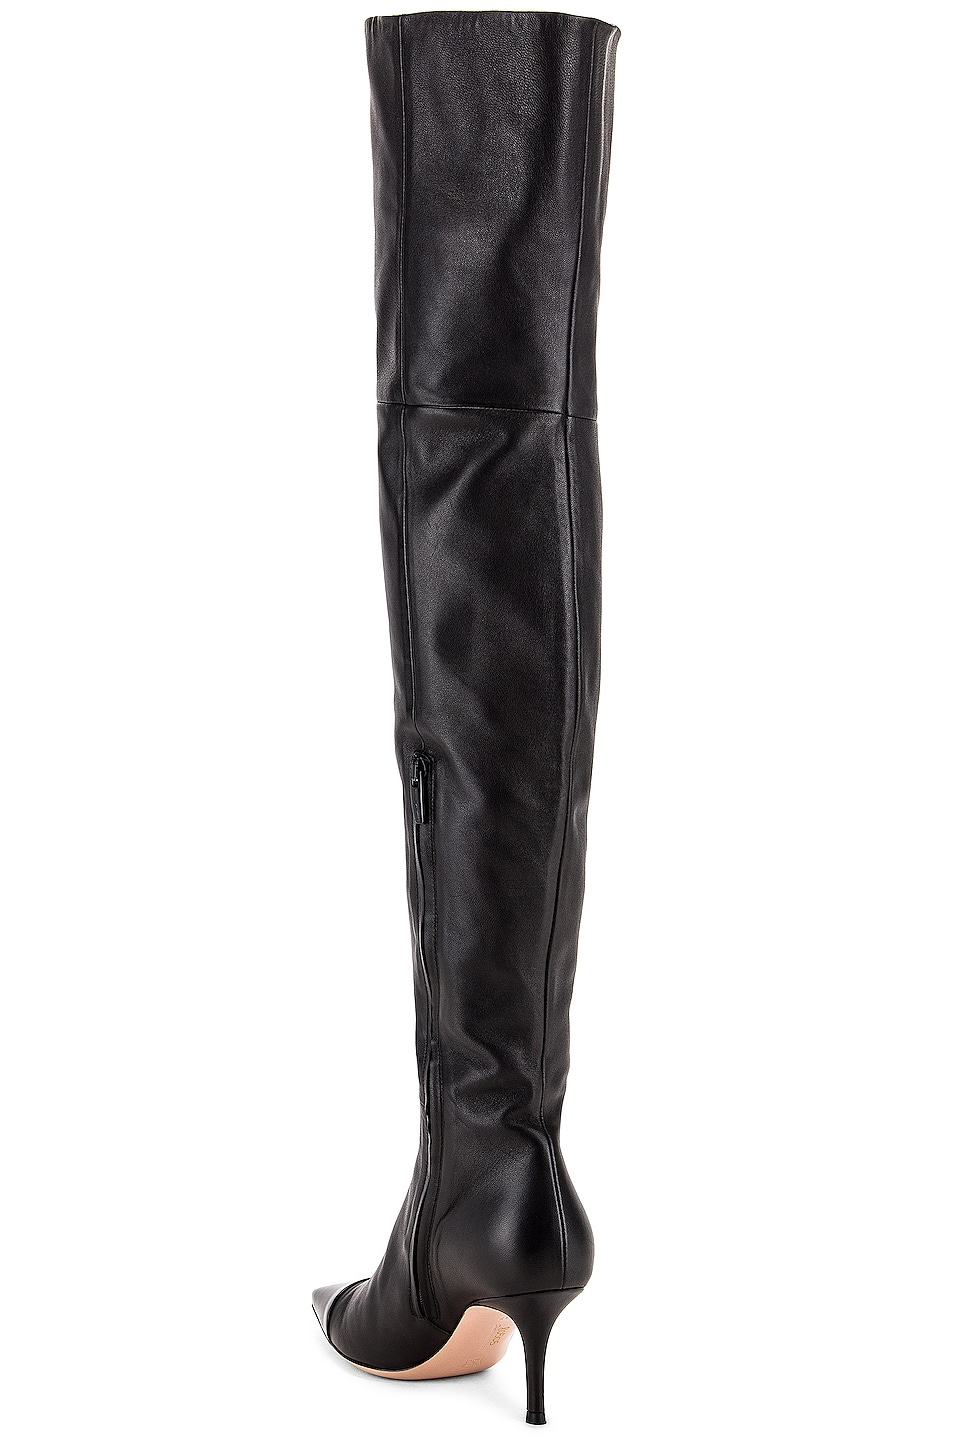 Image 3 of Gianvito Rossi Over the Knee Toe Cap Boots in Black